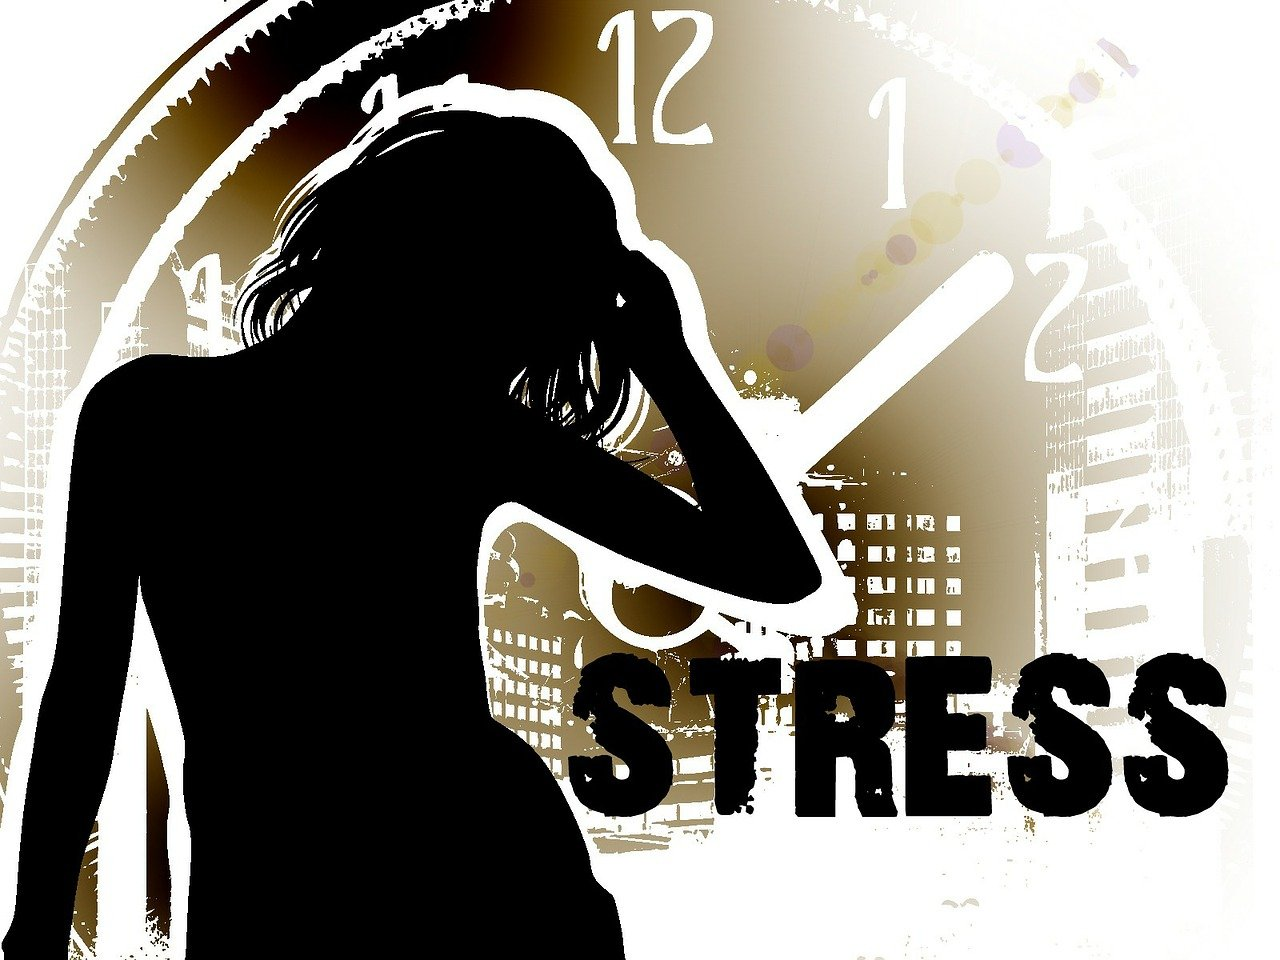 A silhouette of a woman is stress